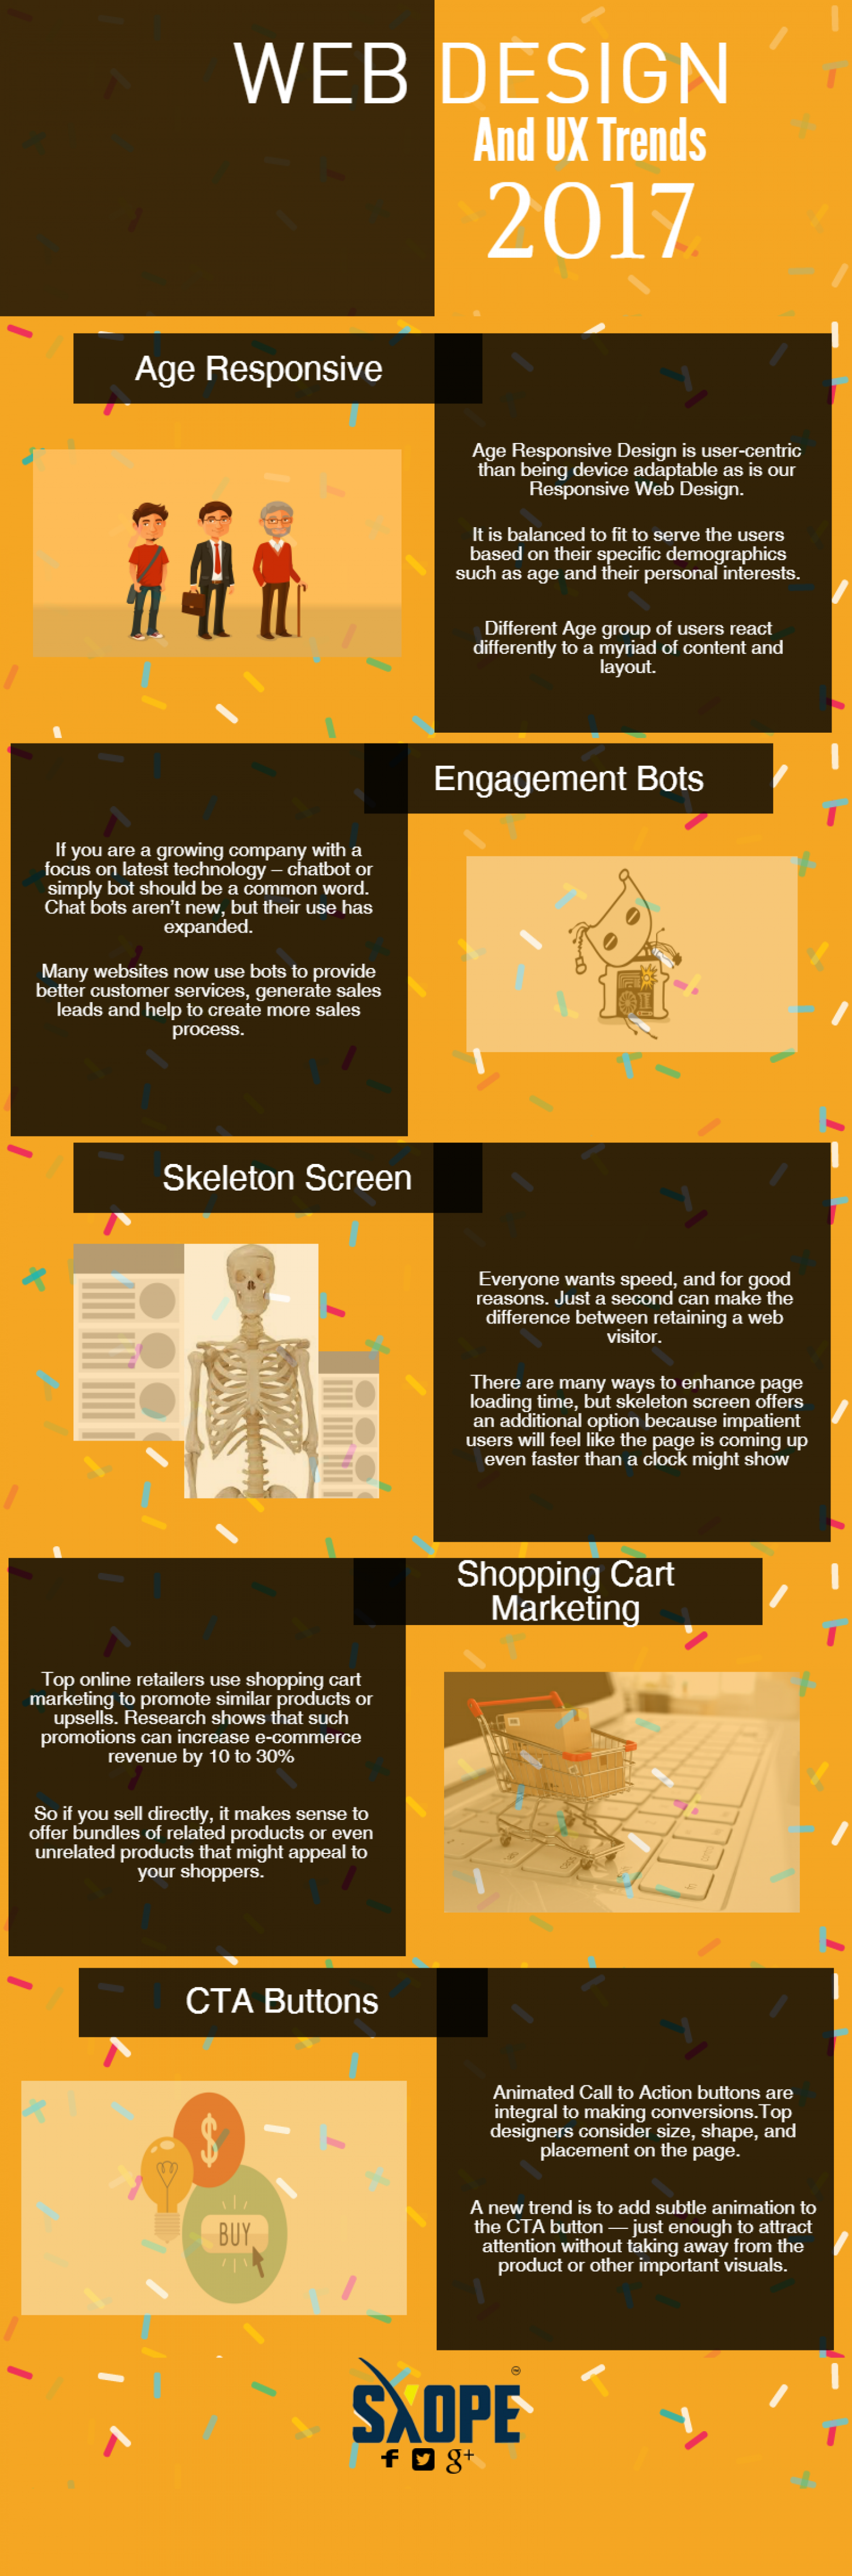 Infographics on Web Designing and UX trends in 2017 Infographic